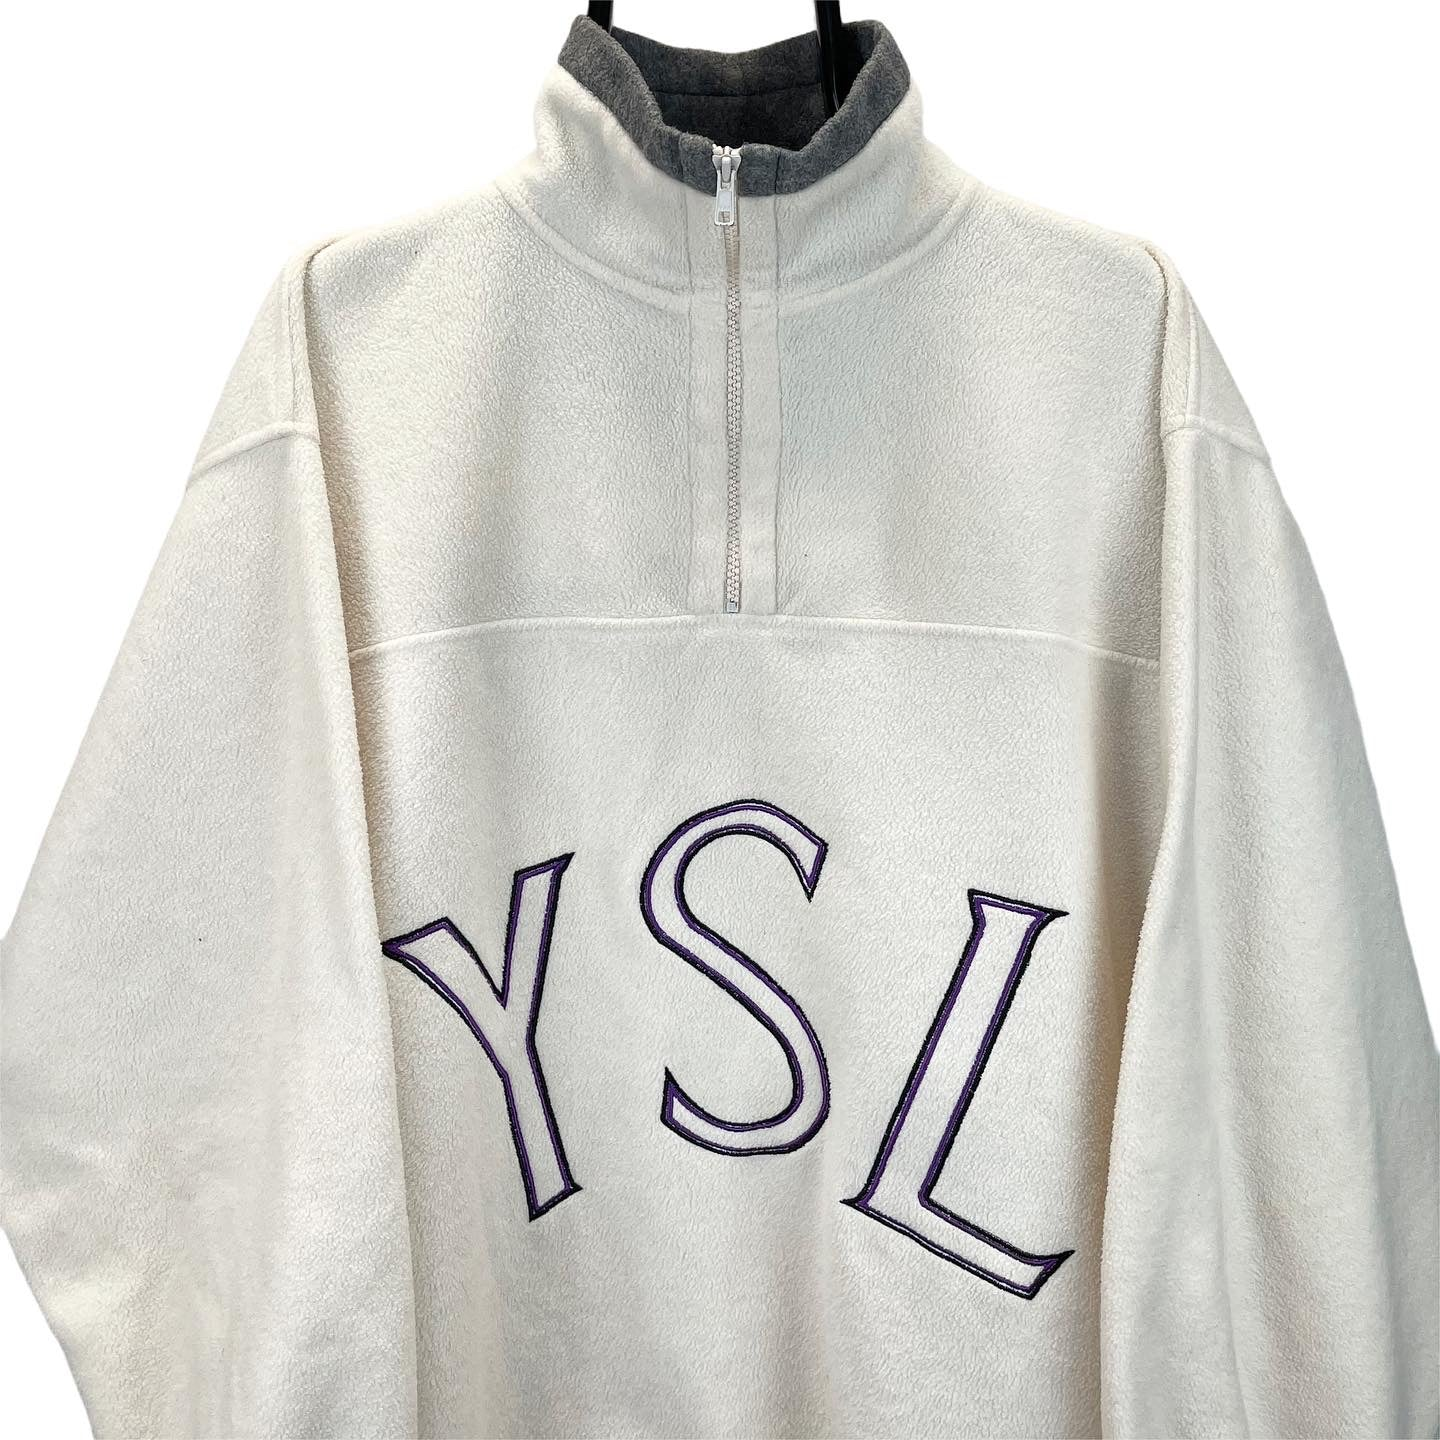 Vintage YSL Spellout 1/4 Zip Fleece in Cream & Purple - Men's XL/Women's XXL